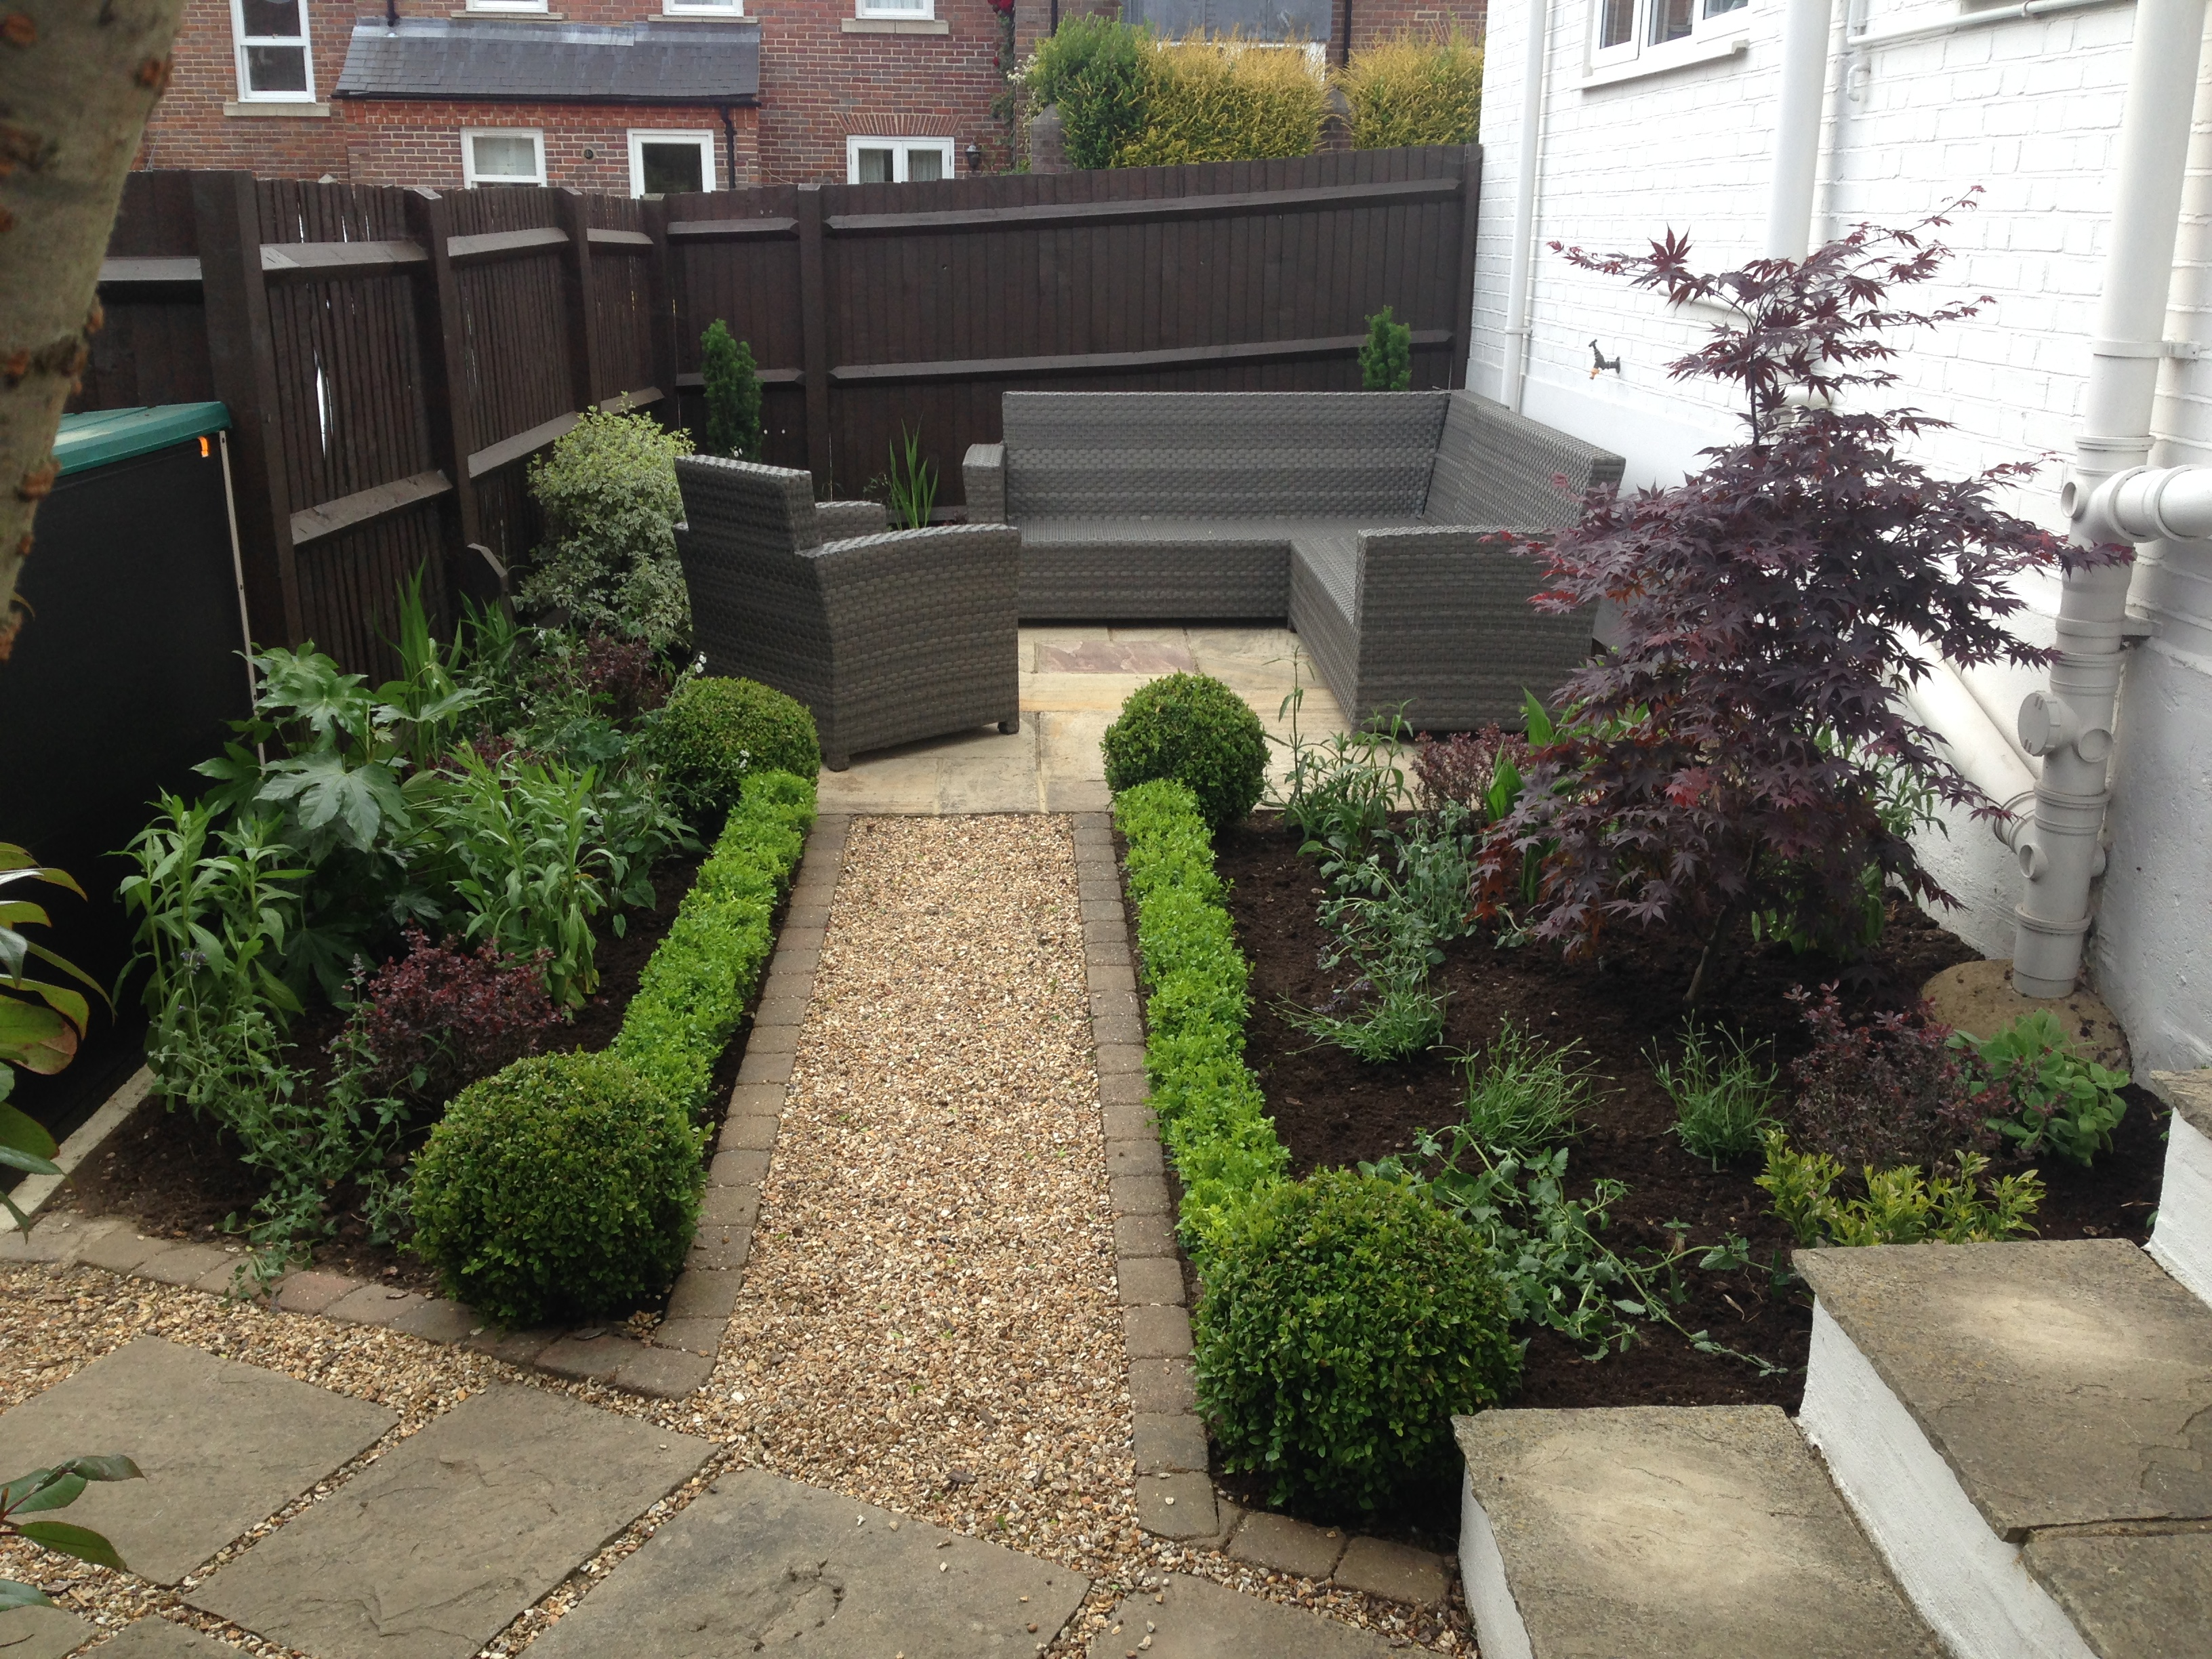 J Morris Garden Services St Albans Based Company Specialising In Garden Maintenance Design Planting And Landscaping Services